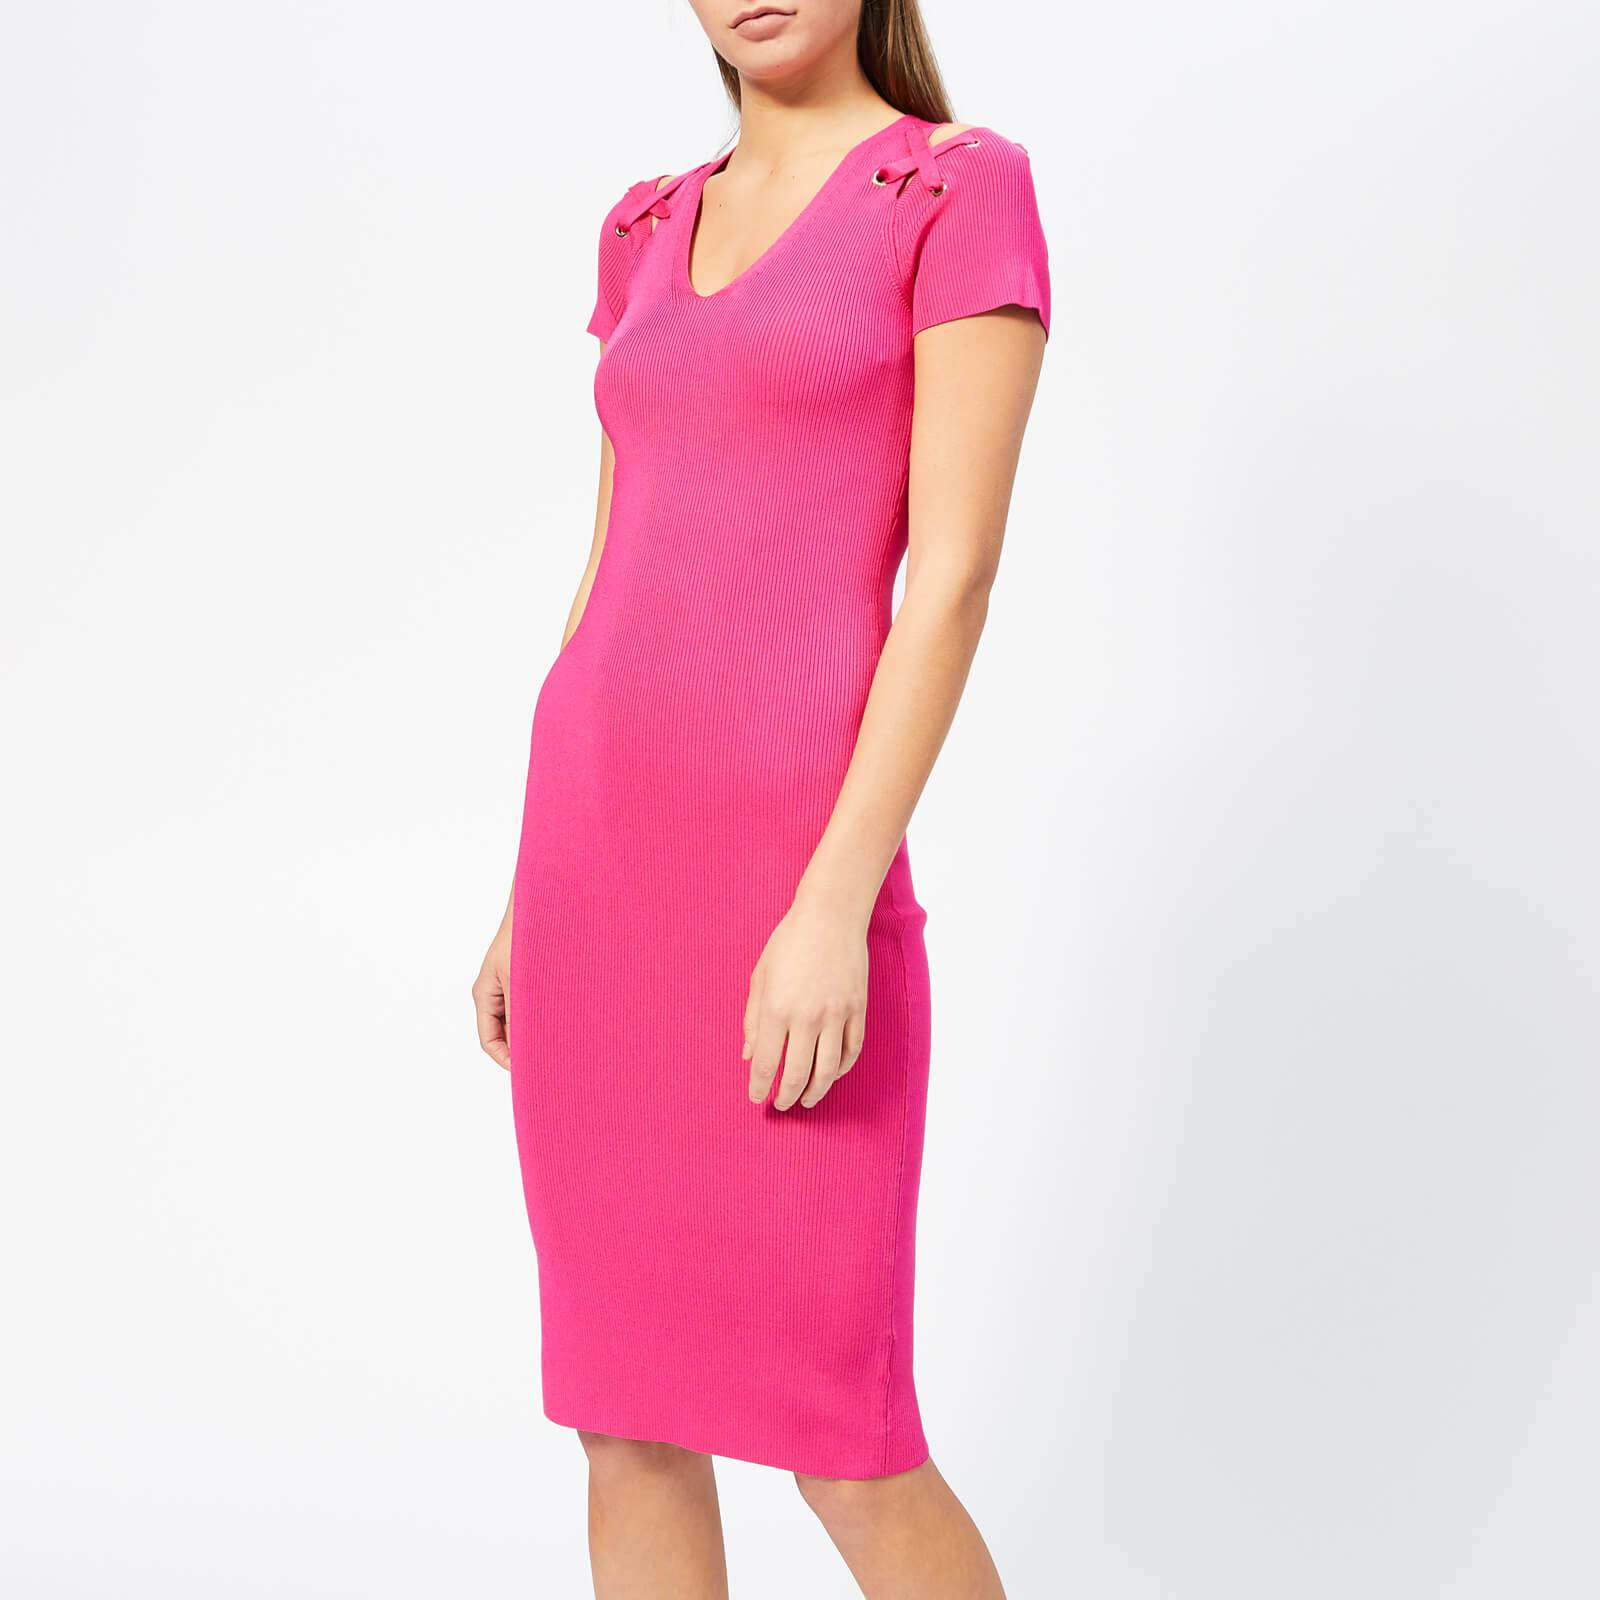 MICHAEL MICHAEL KORS Women's Cut Out Lace Up V Neck Dress - Electric Pink - M - Pink